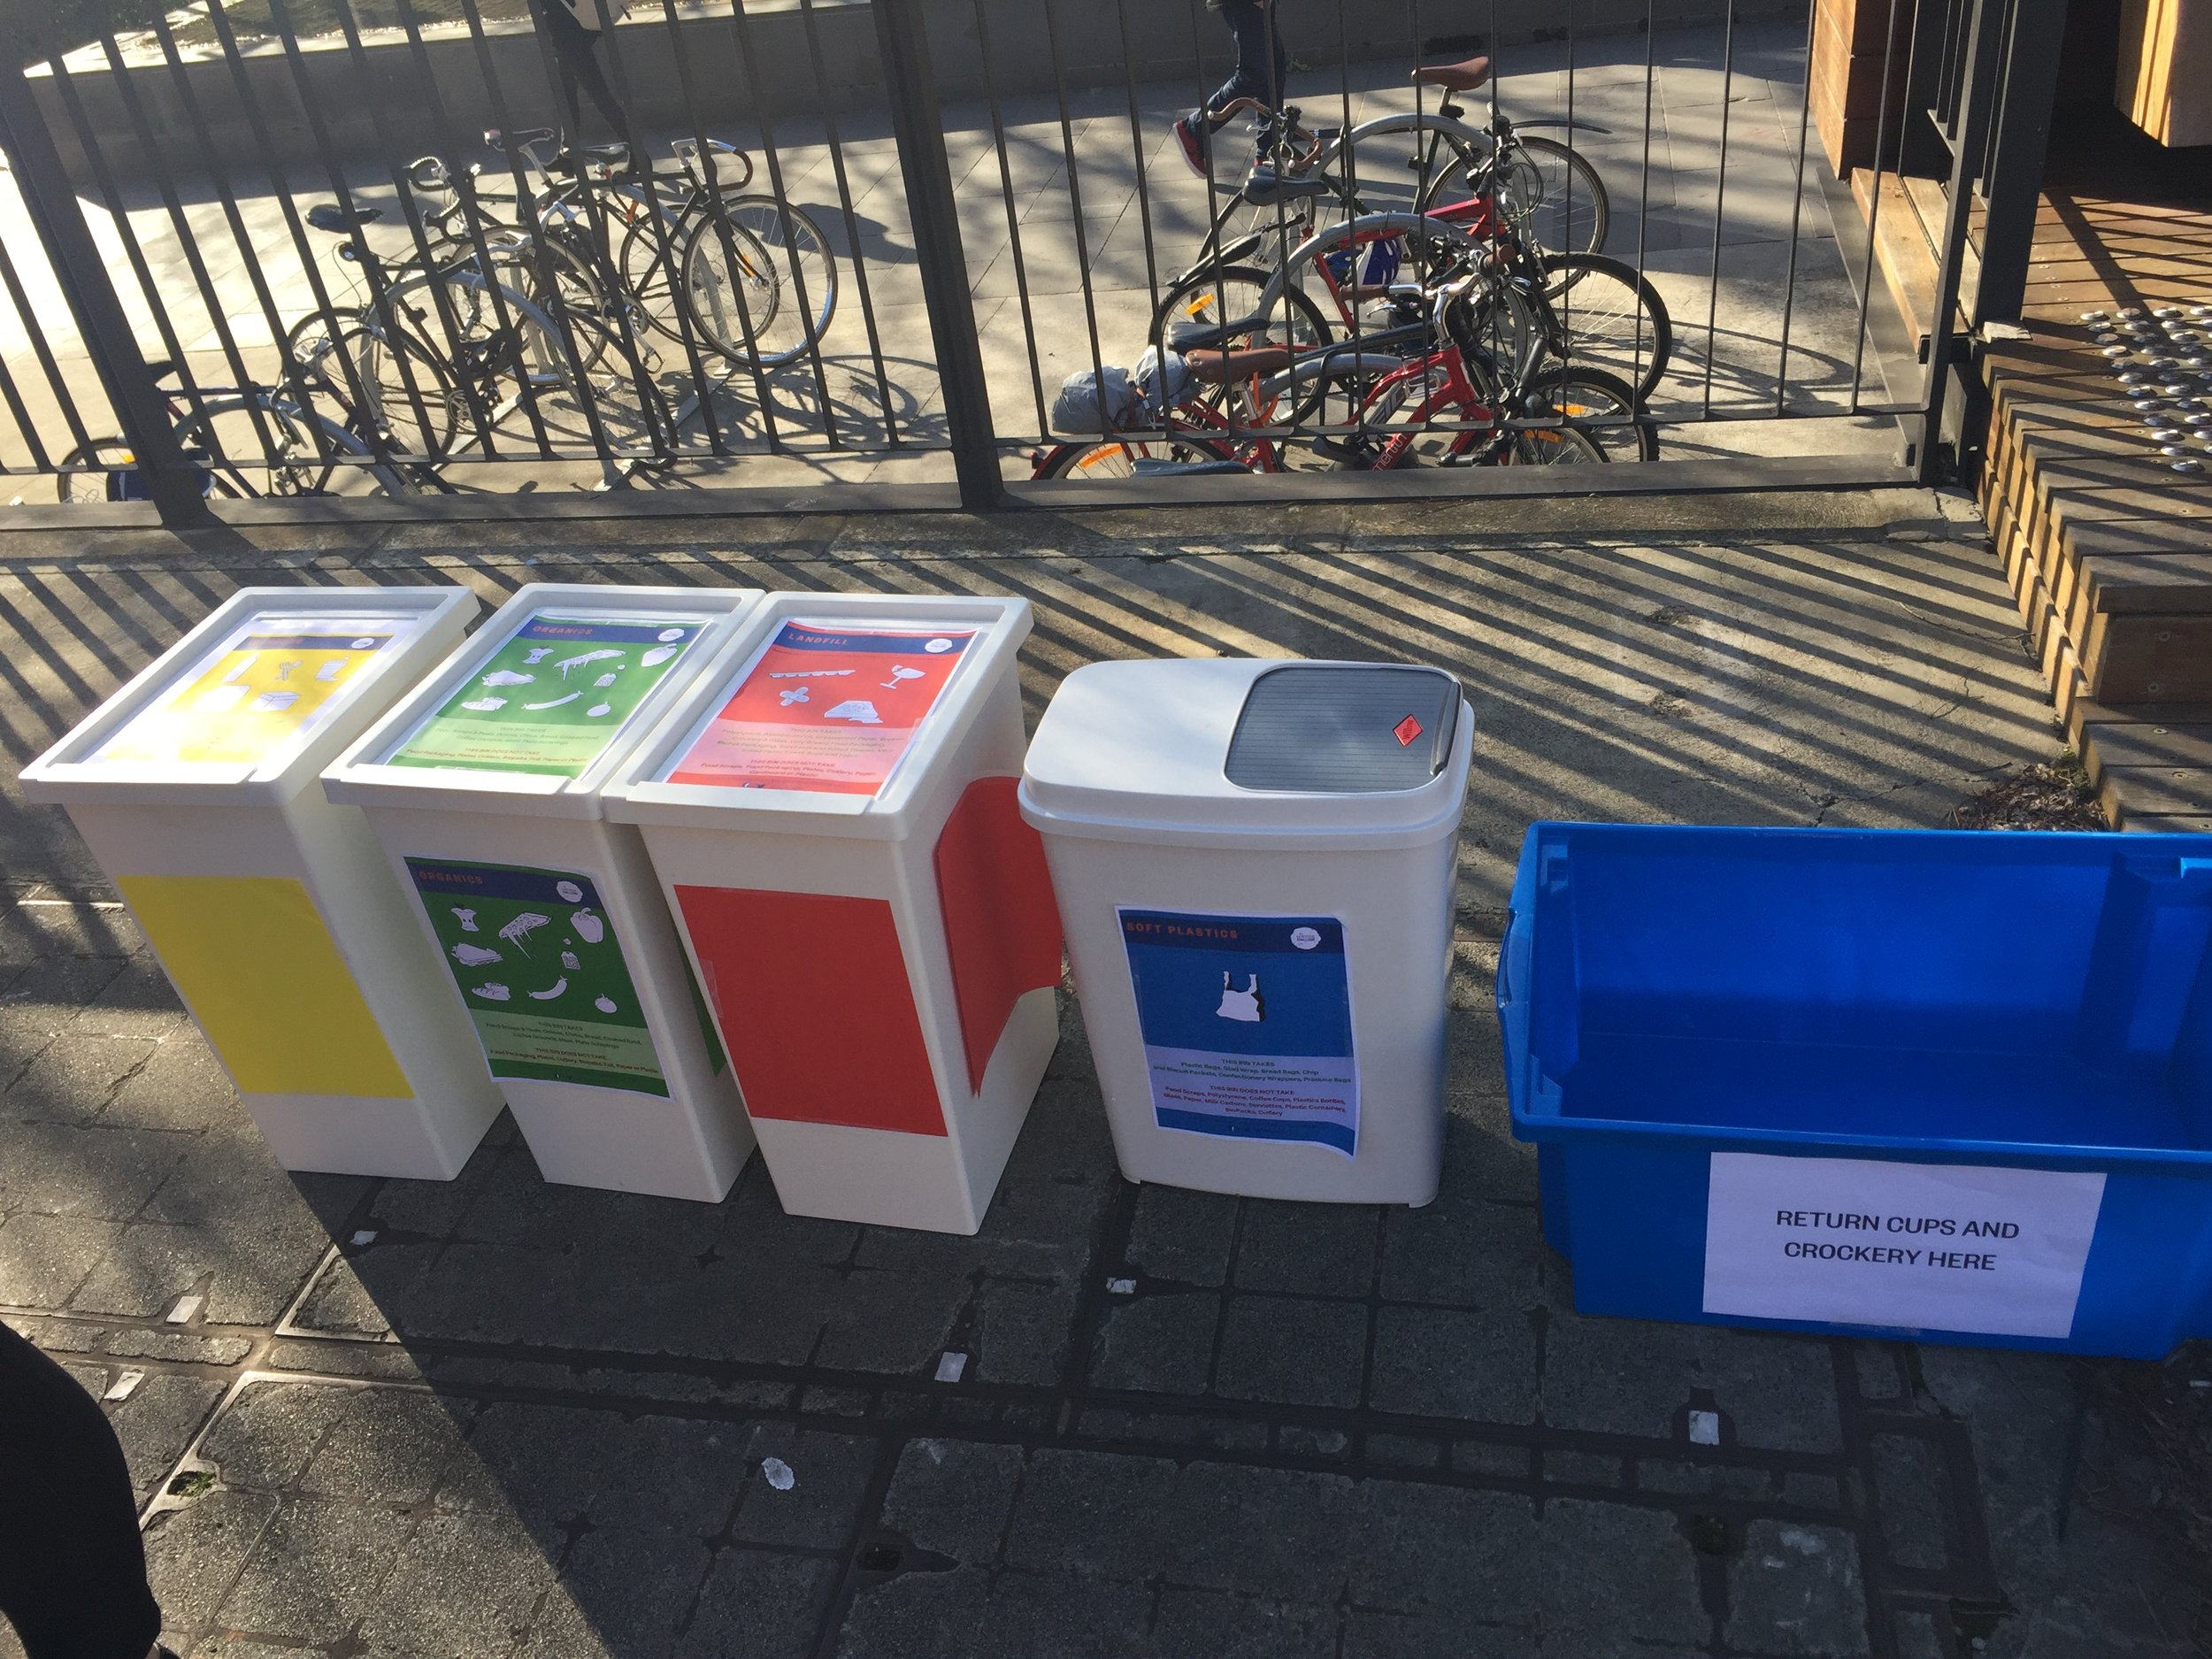 Fair Food Challenge is developing a bin system so communities can separate food waste and soft plastics and save them from landfill